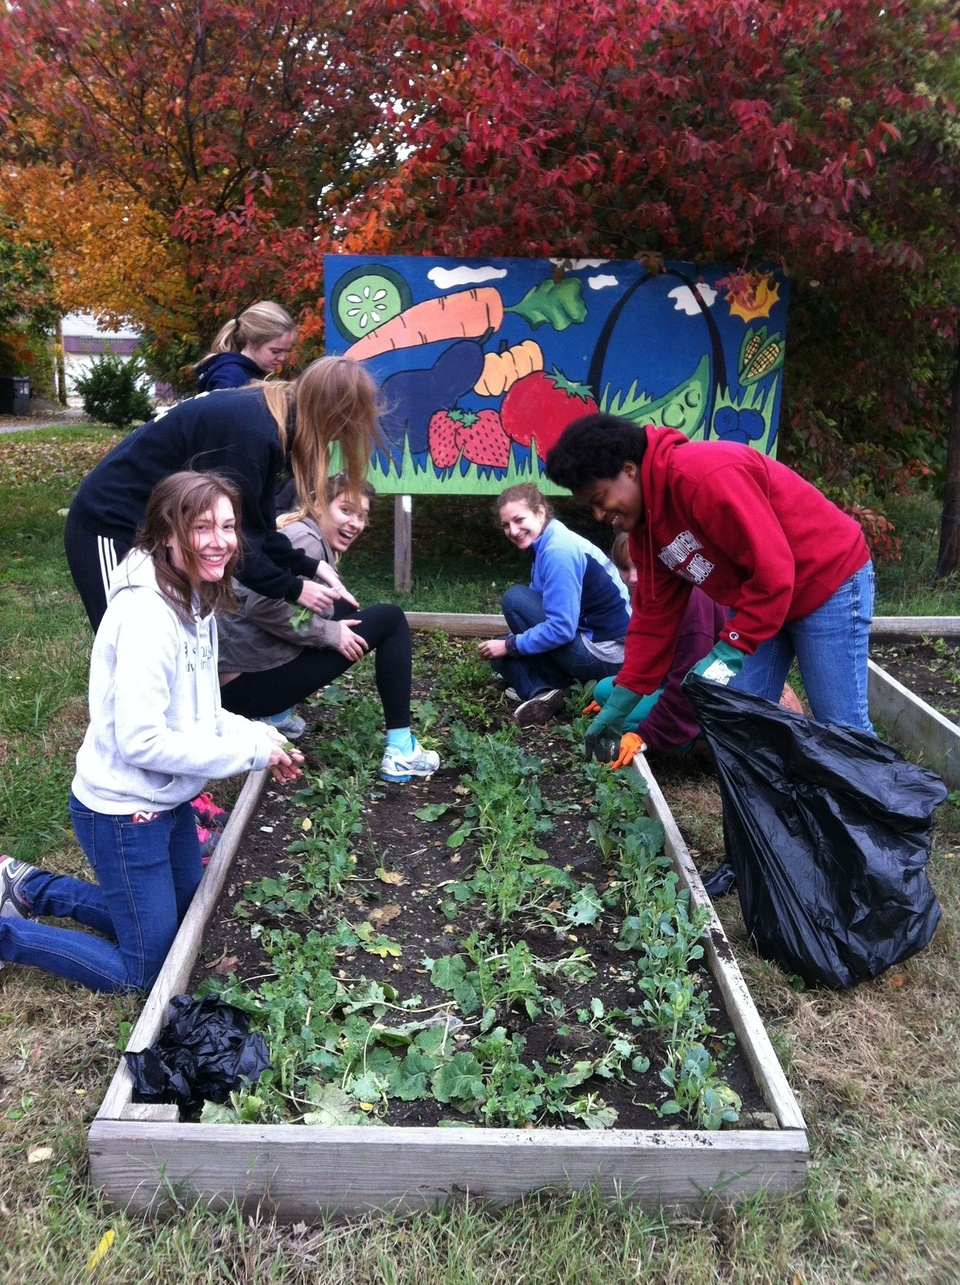 Students planting a raised bed garden in front of a mural.